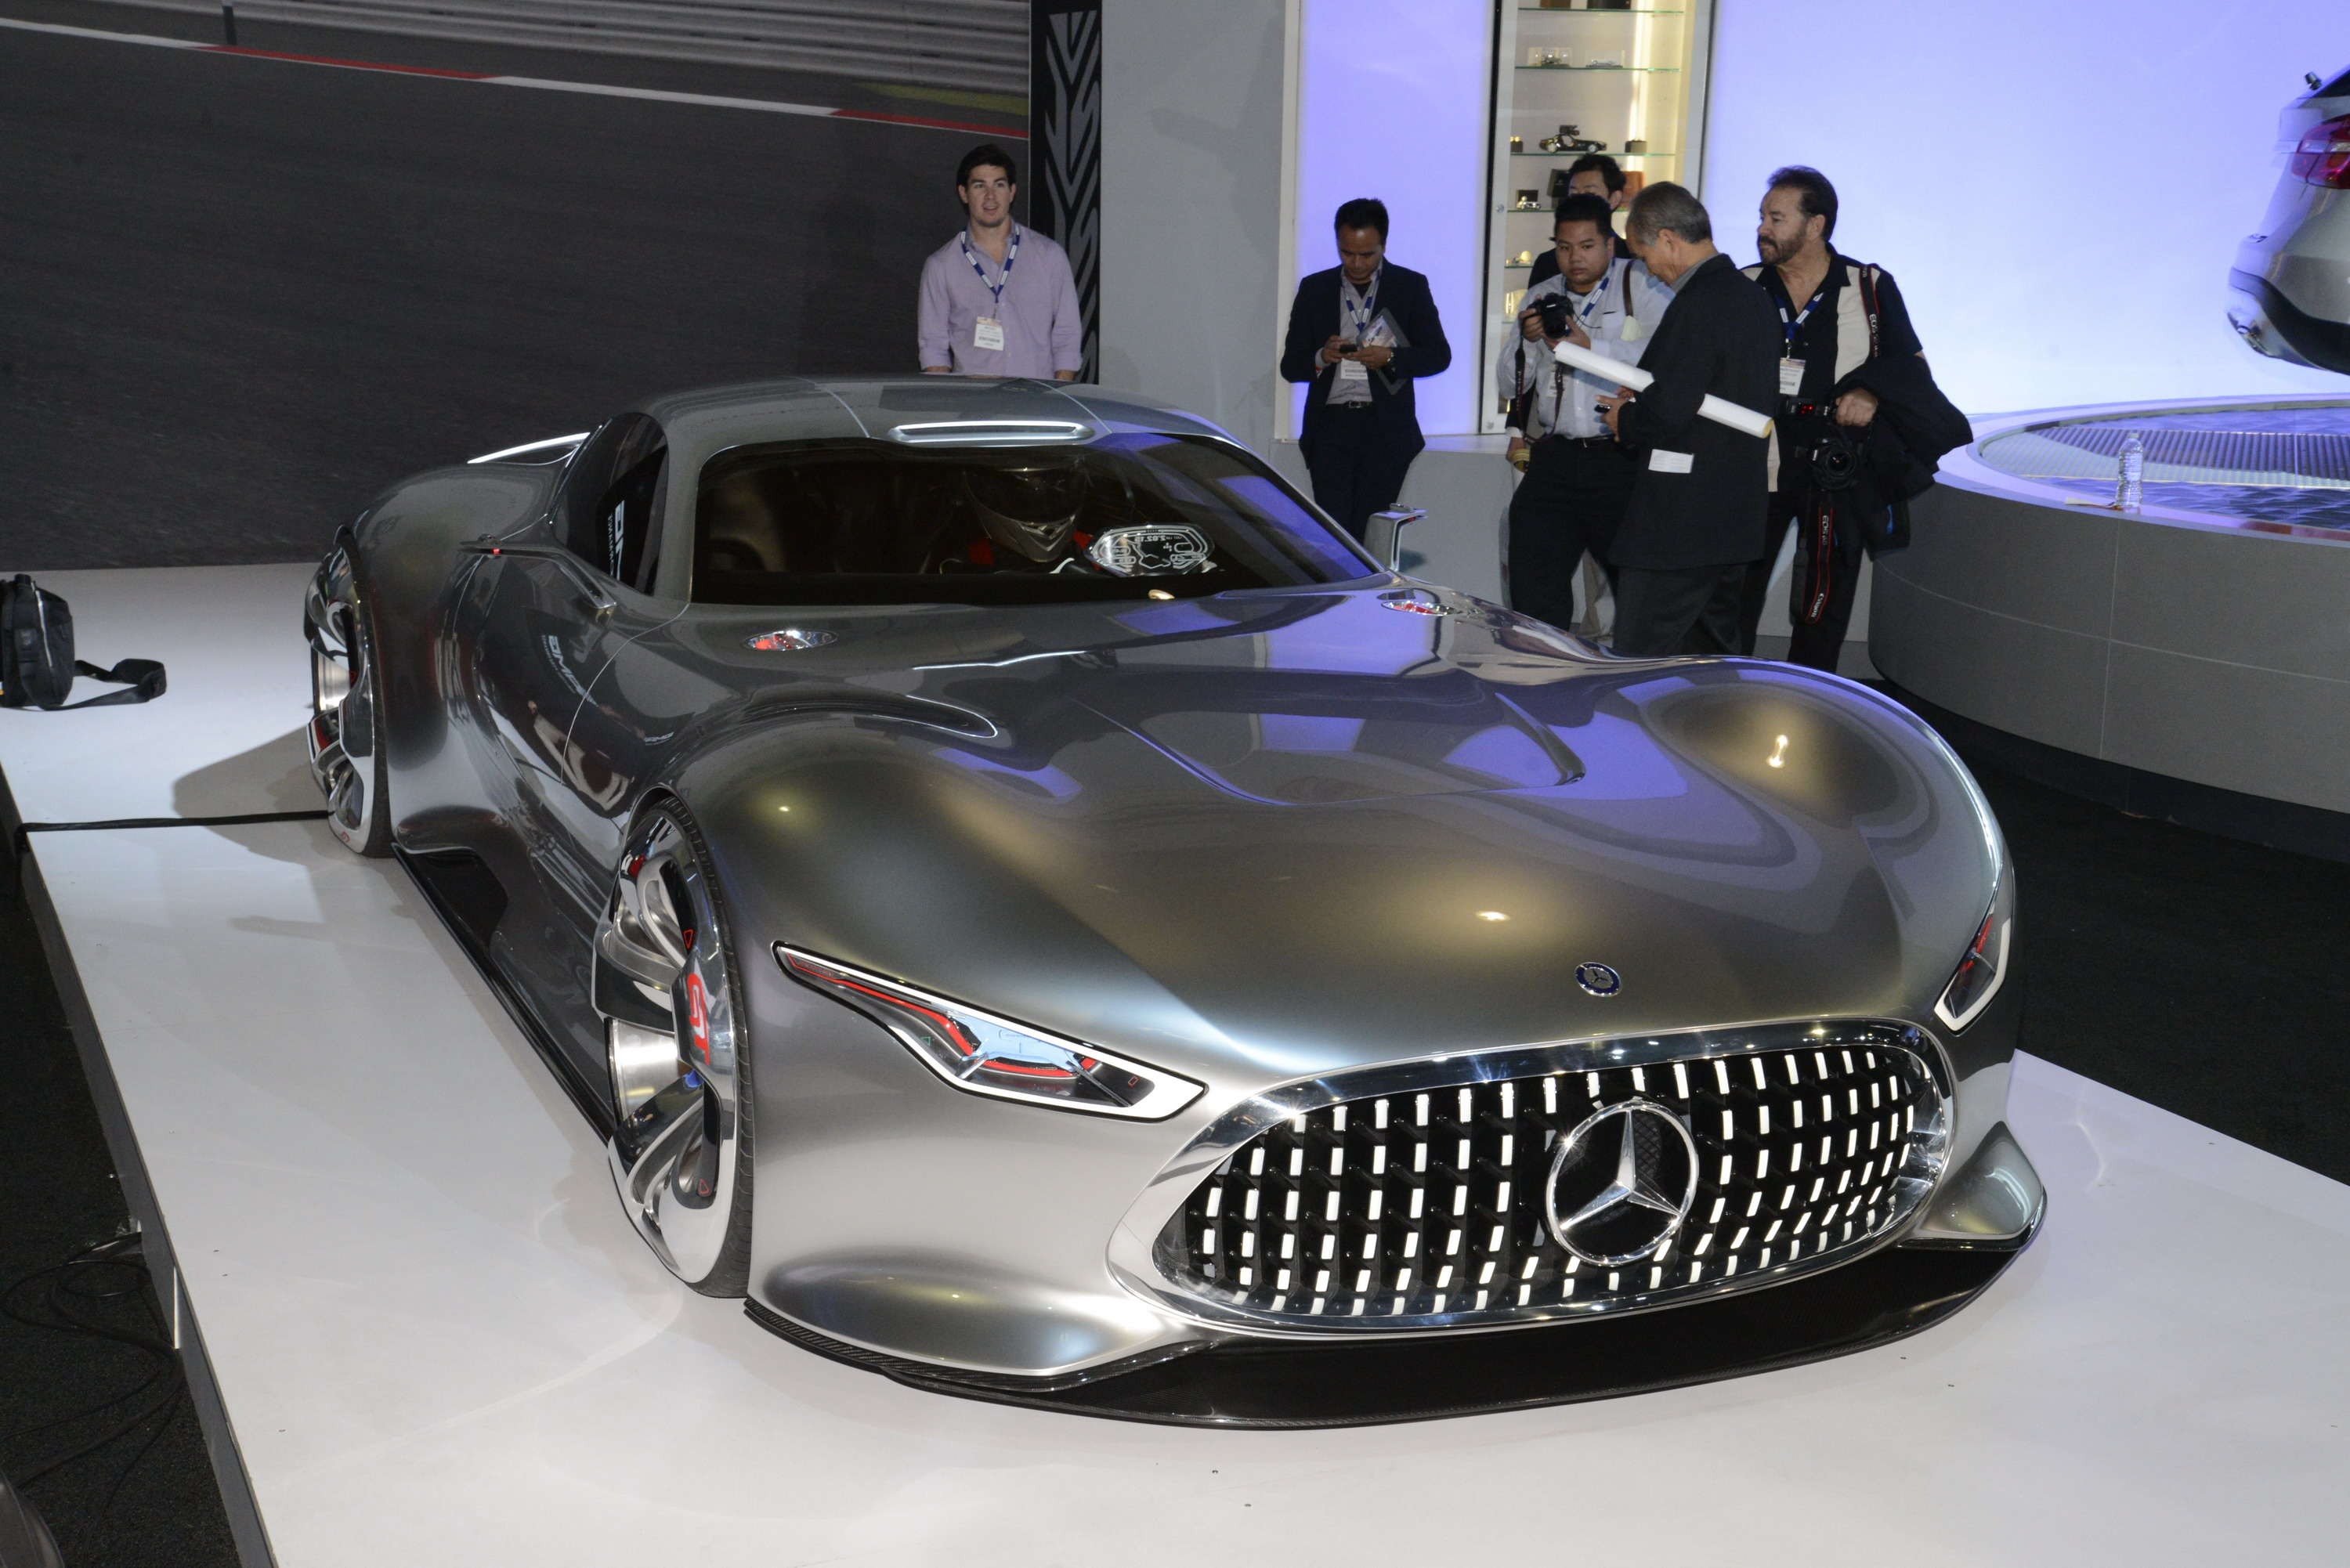 Genial 2013 Mercedes Benz Vision Gran Turismo Concept Review   Top Speed. »